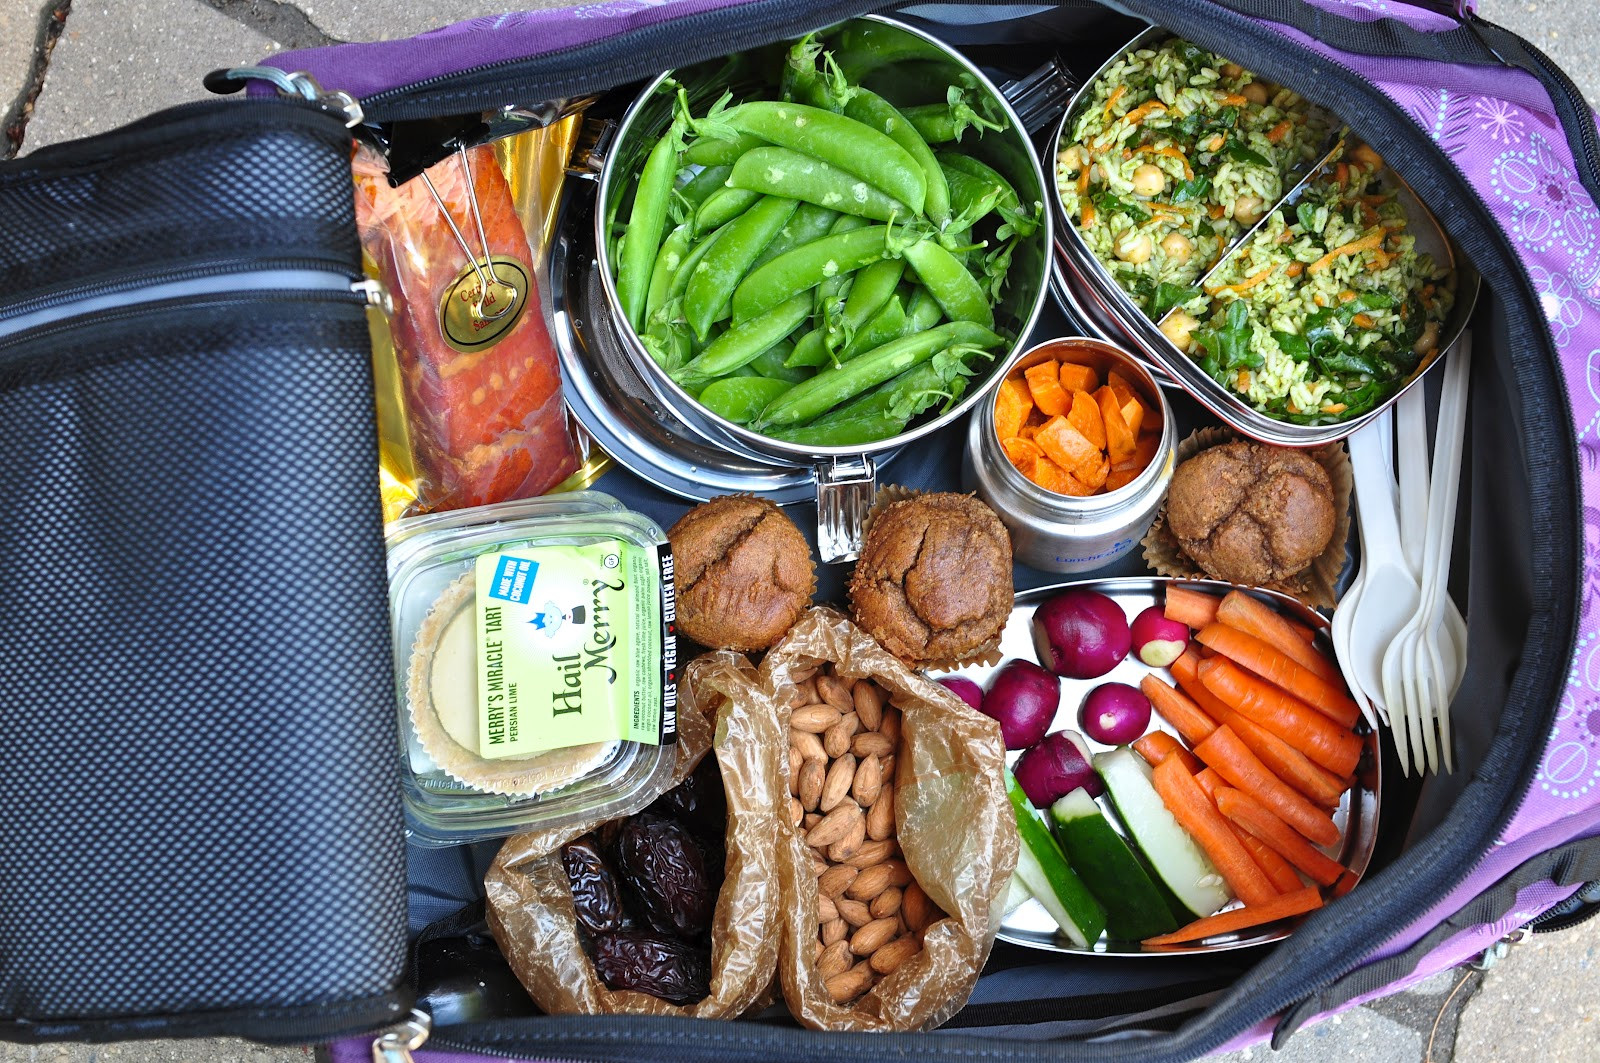 Healthy Snacks For Traveling  Nourishing Meals Packing Healthy Food for Air Travel